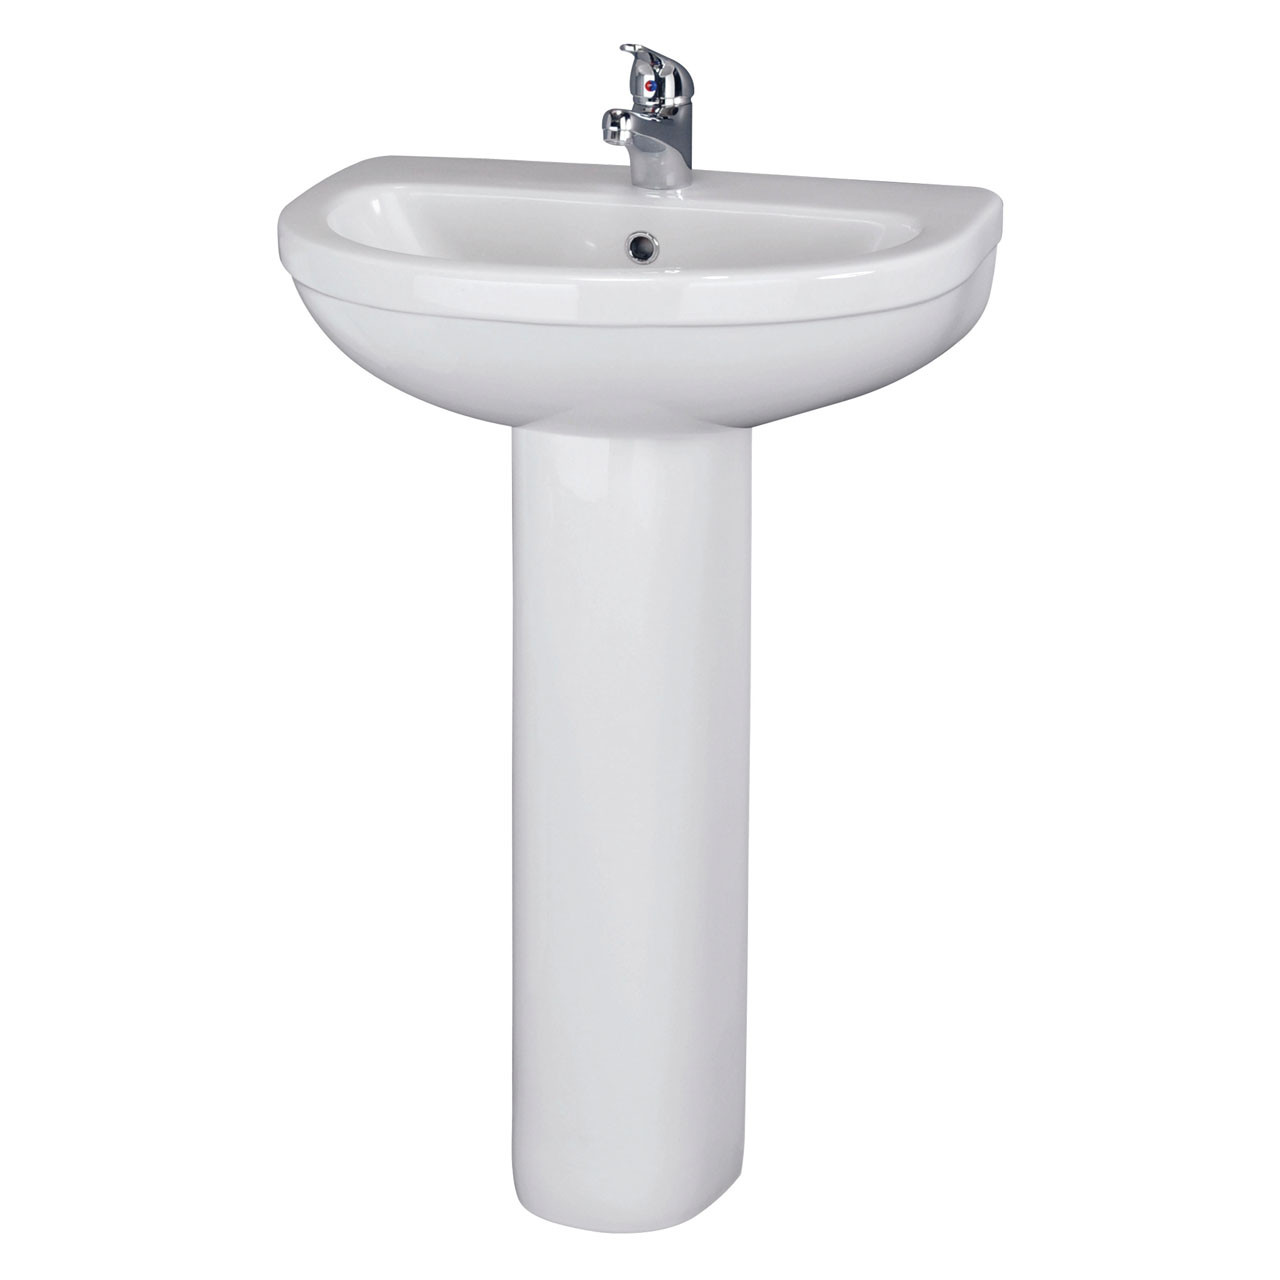 Nuie Ivo 550mm Basin with 1 Tap Hole and Full Pedestal - CIV002